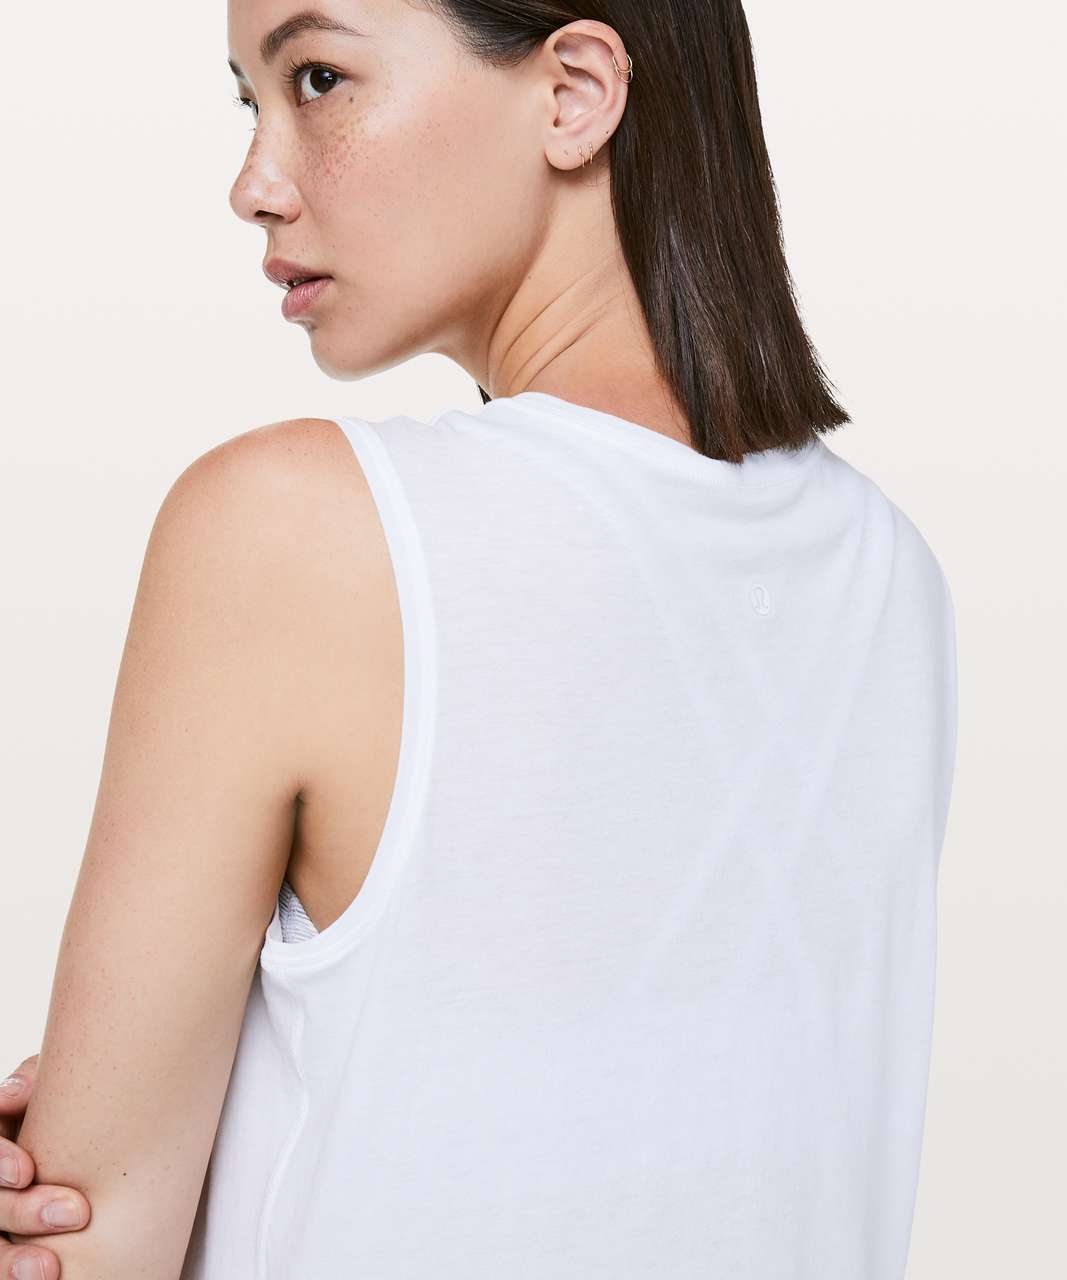 Lululemon Love Sleeveless Tank *Light - White